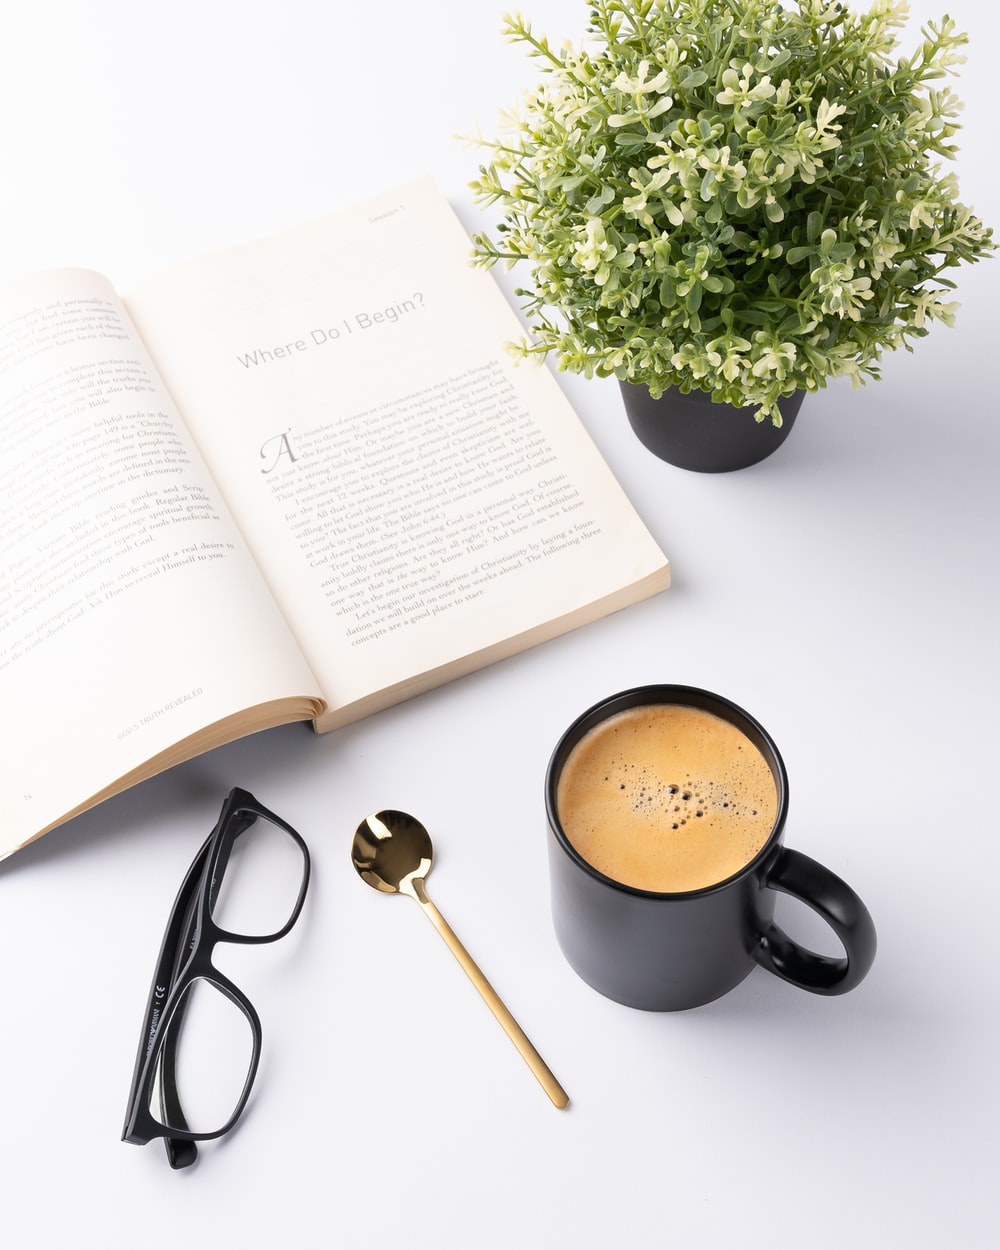 black ceramic mug beside white book page